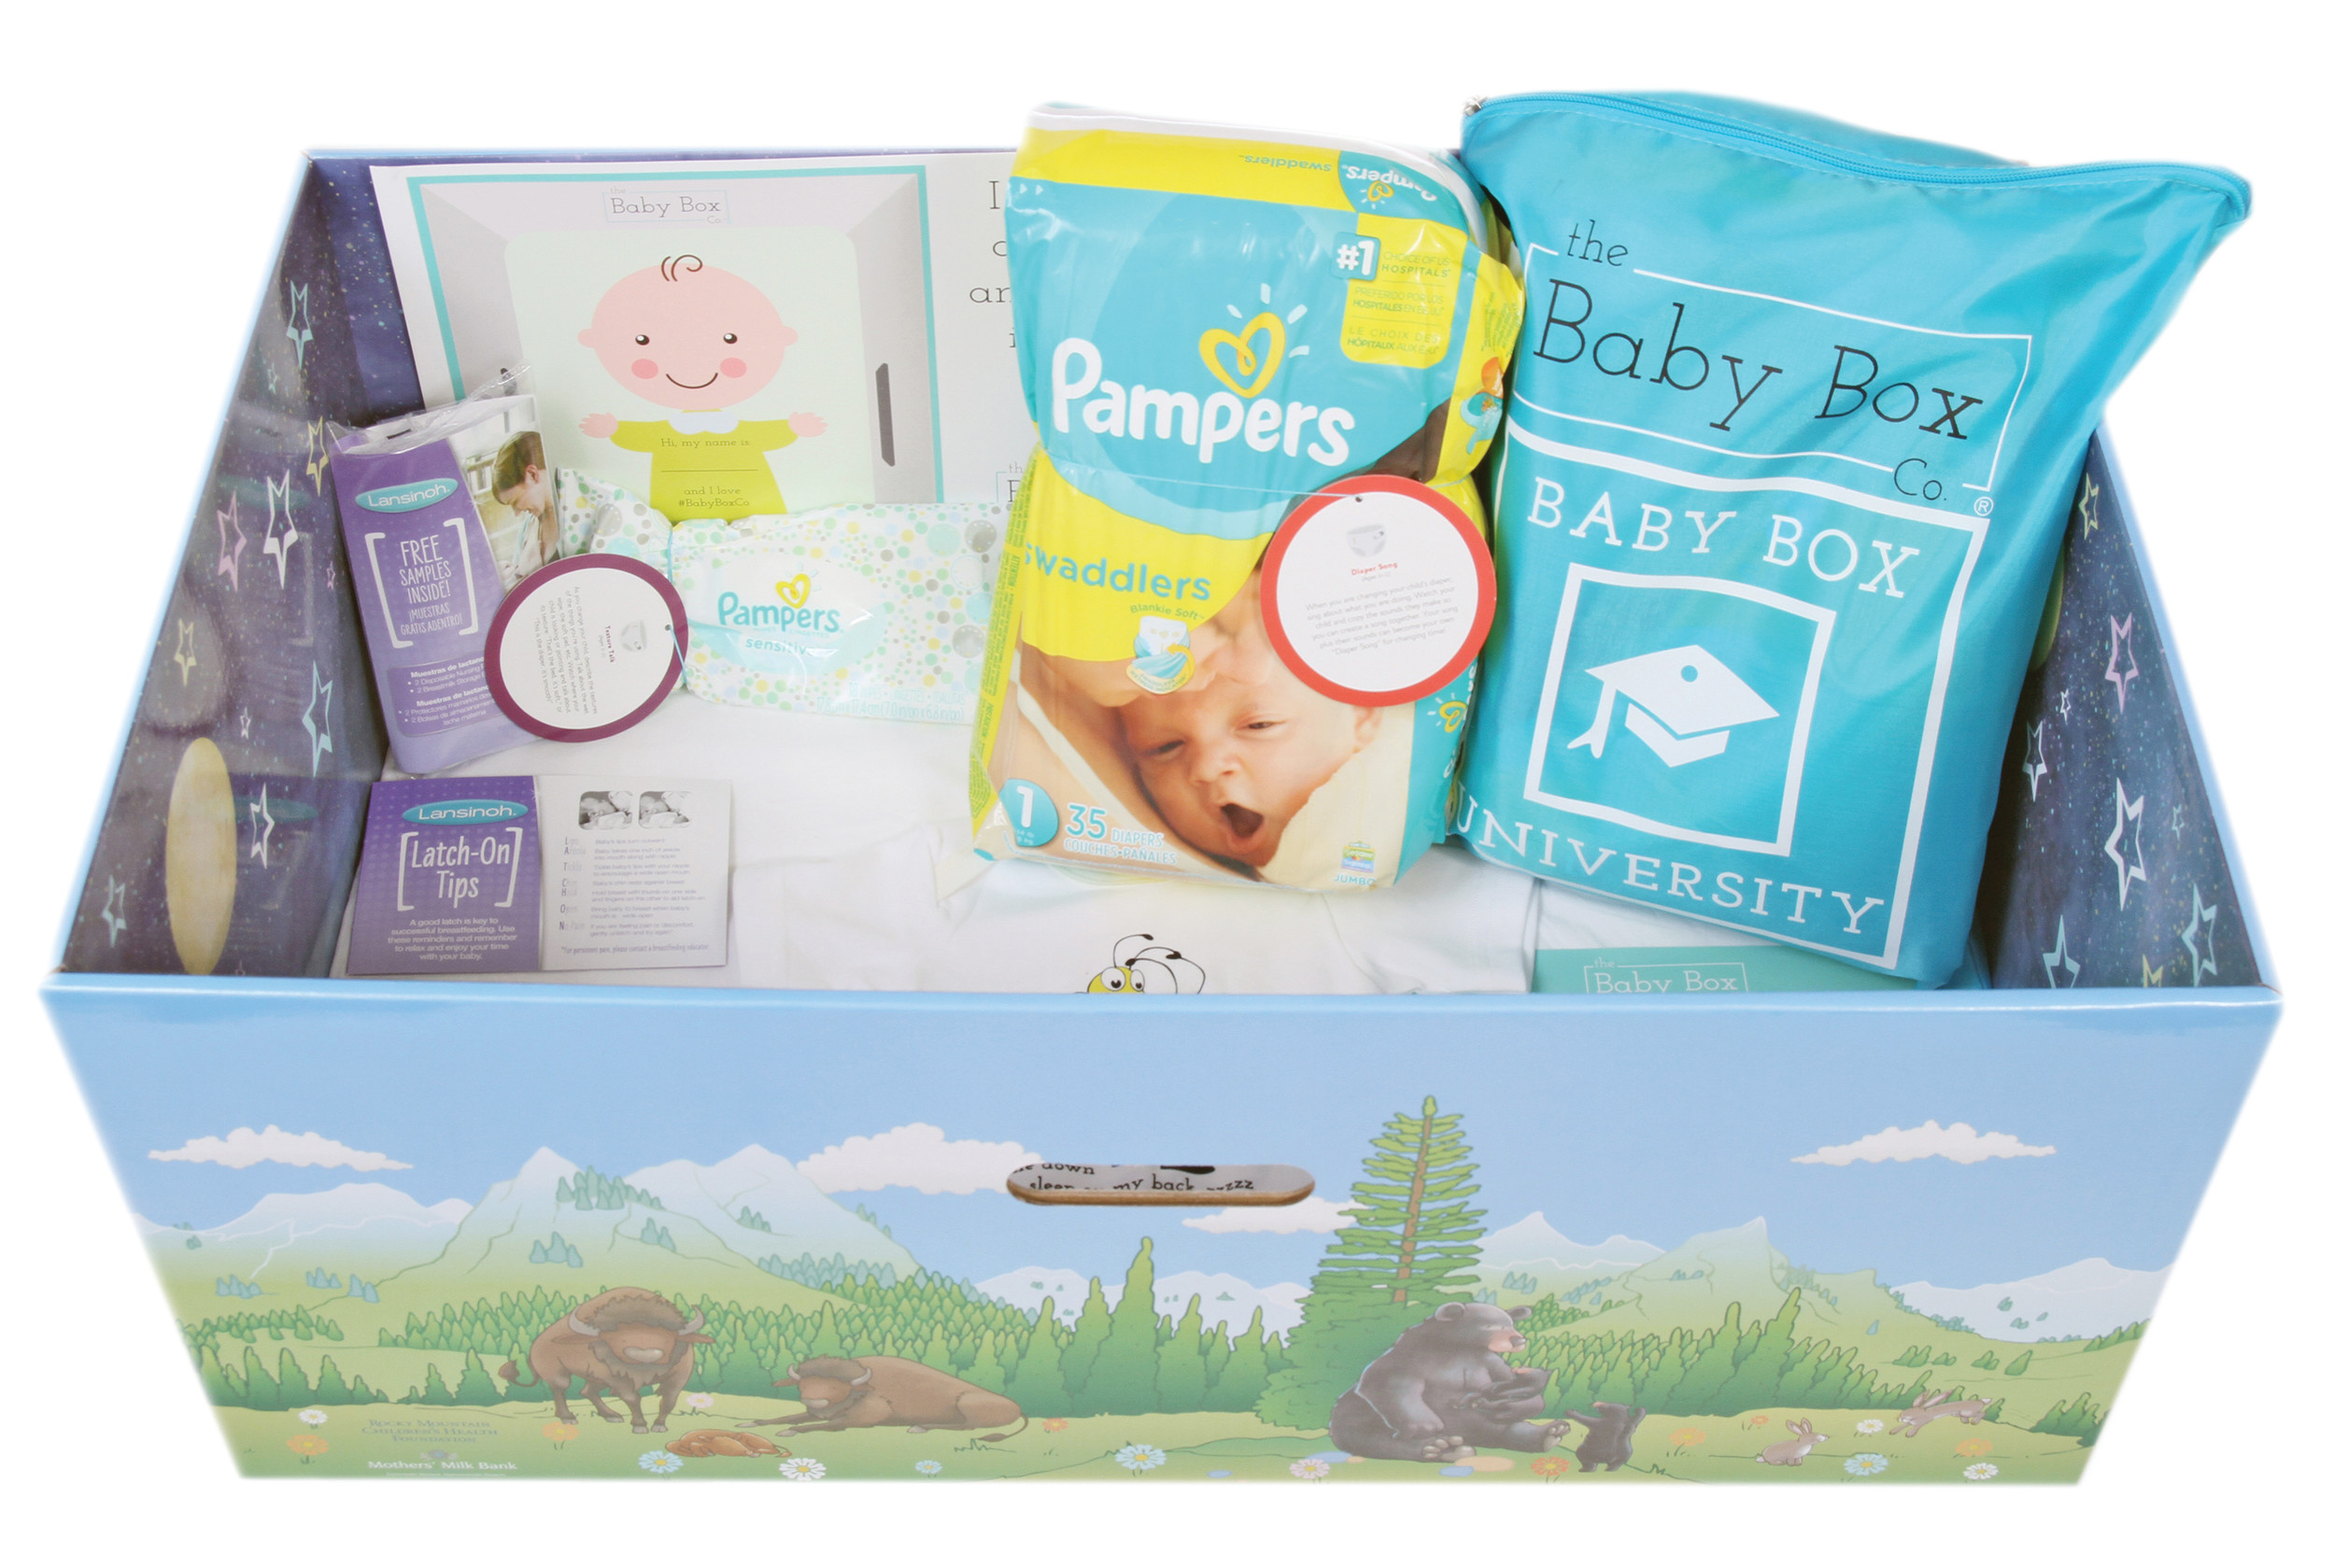 In addition to the certified box with mattress, new parents also receive diapers, wipes and breast-feeding supplies.